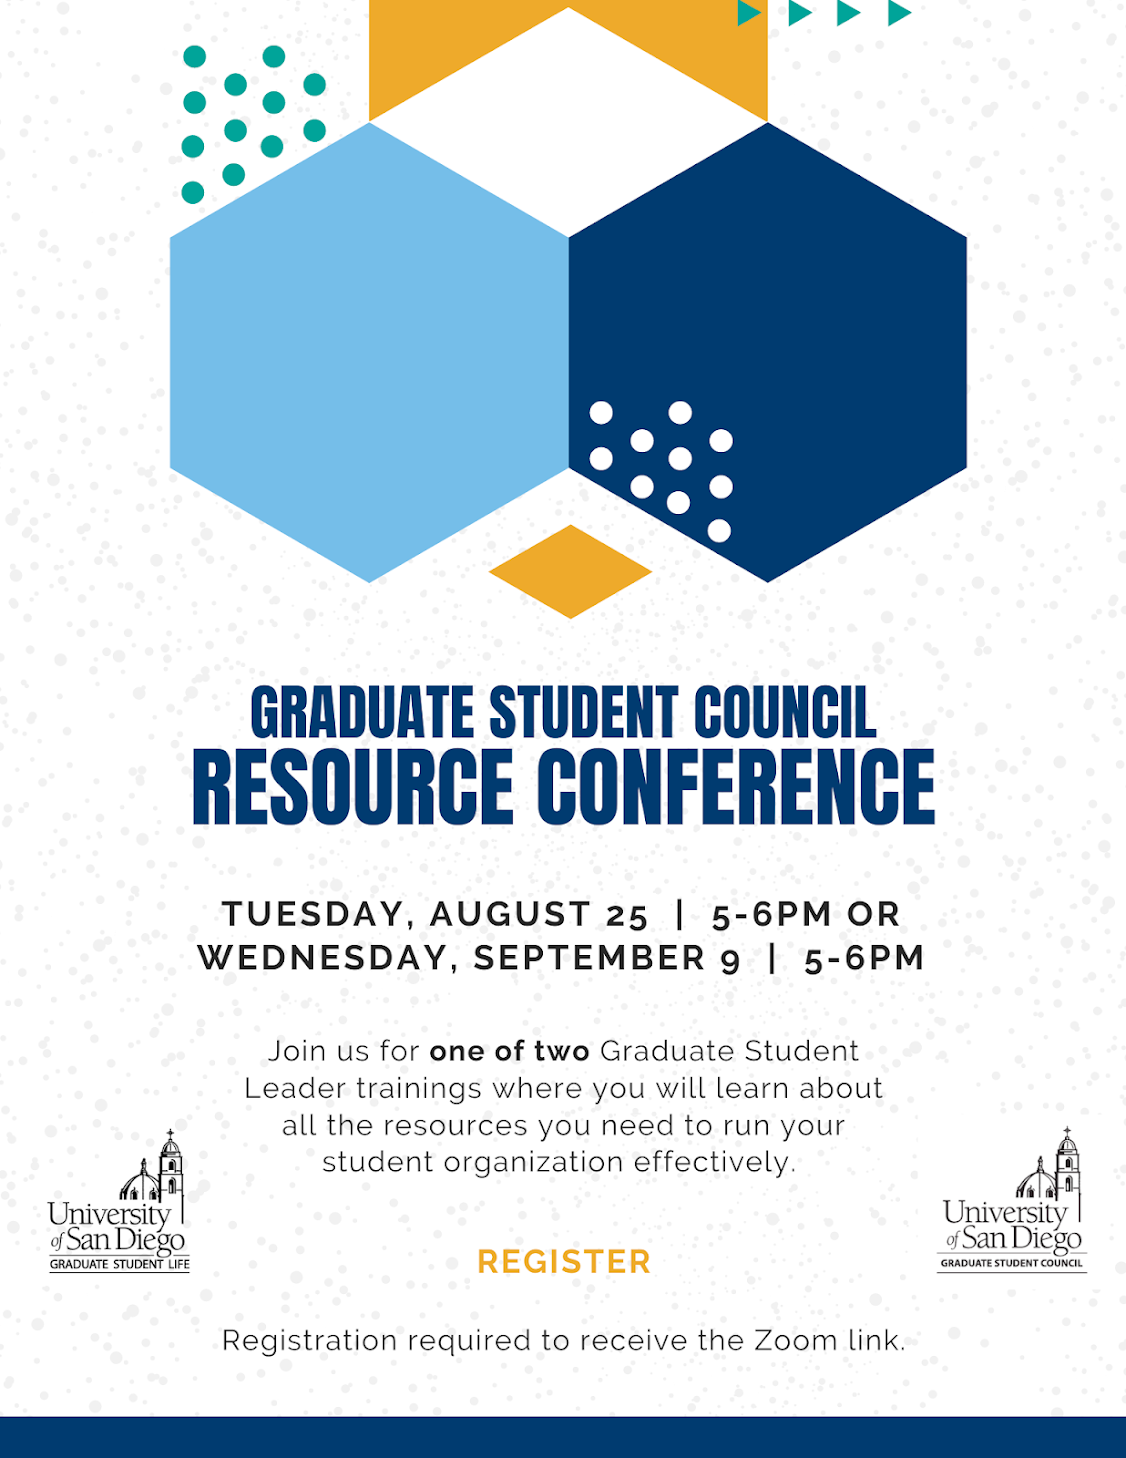 Grad Org Resource Conference, August 25 and September 9 from 5-6pm. Click to register.